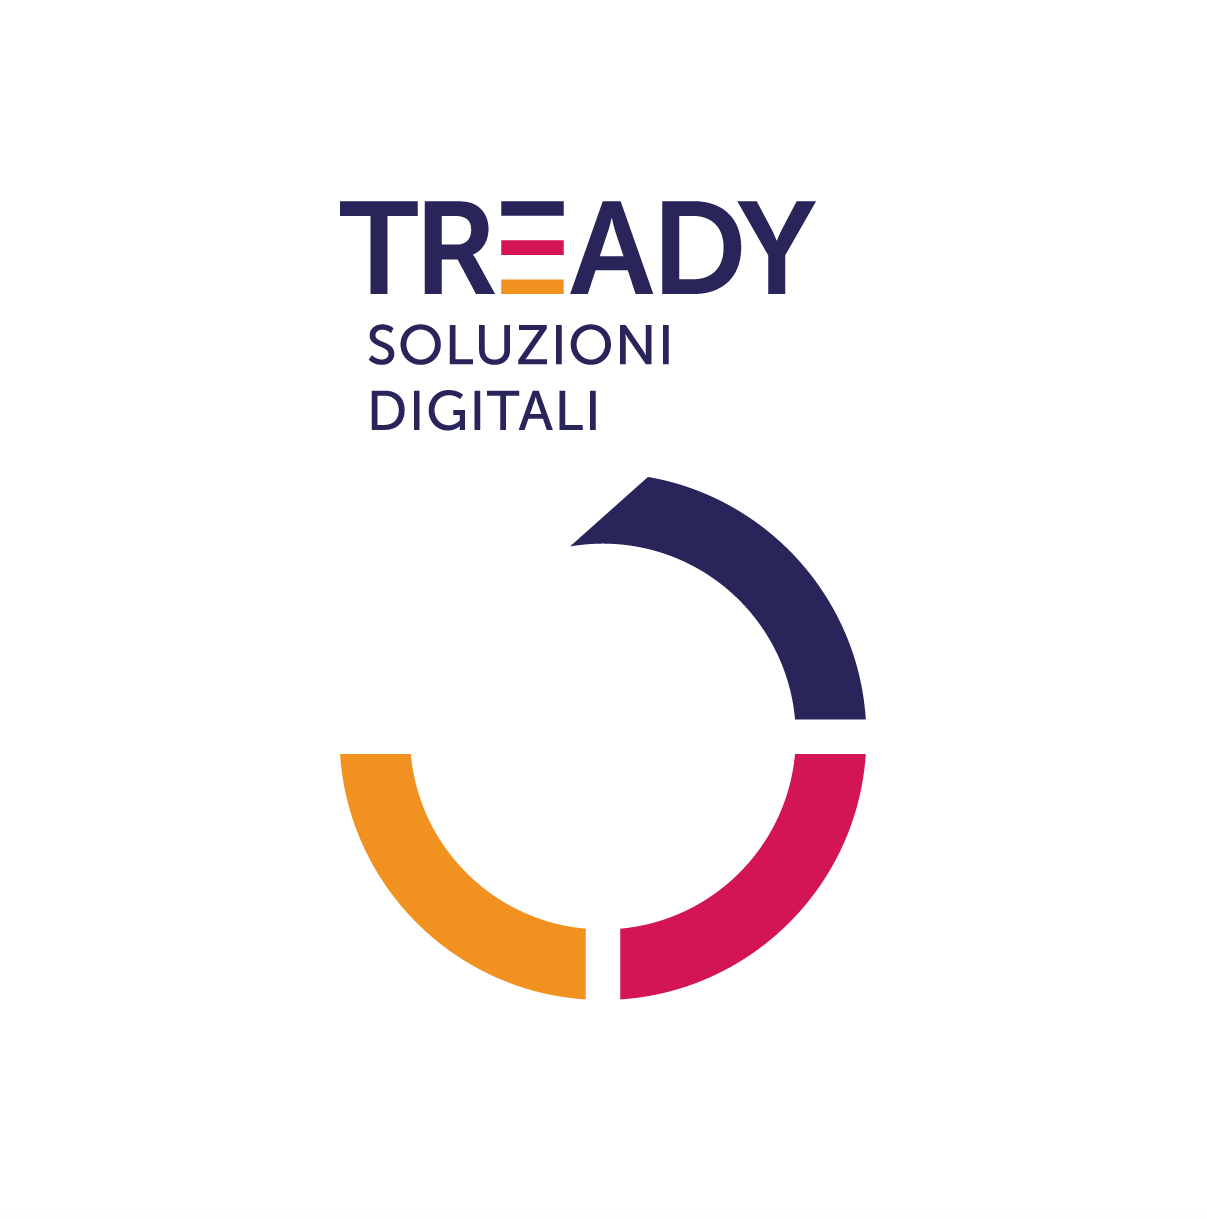 LOGO TREADY.IT